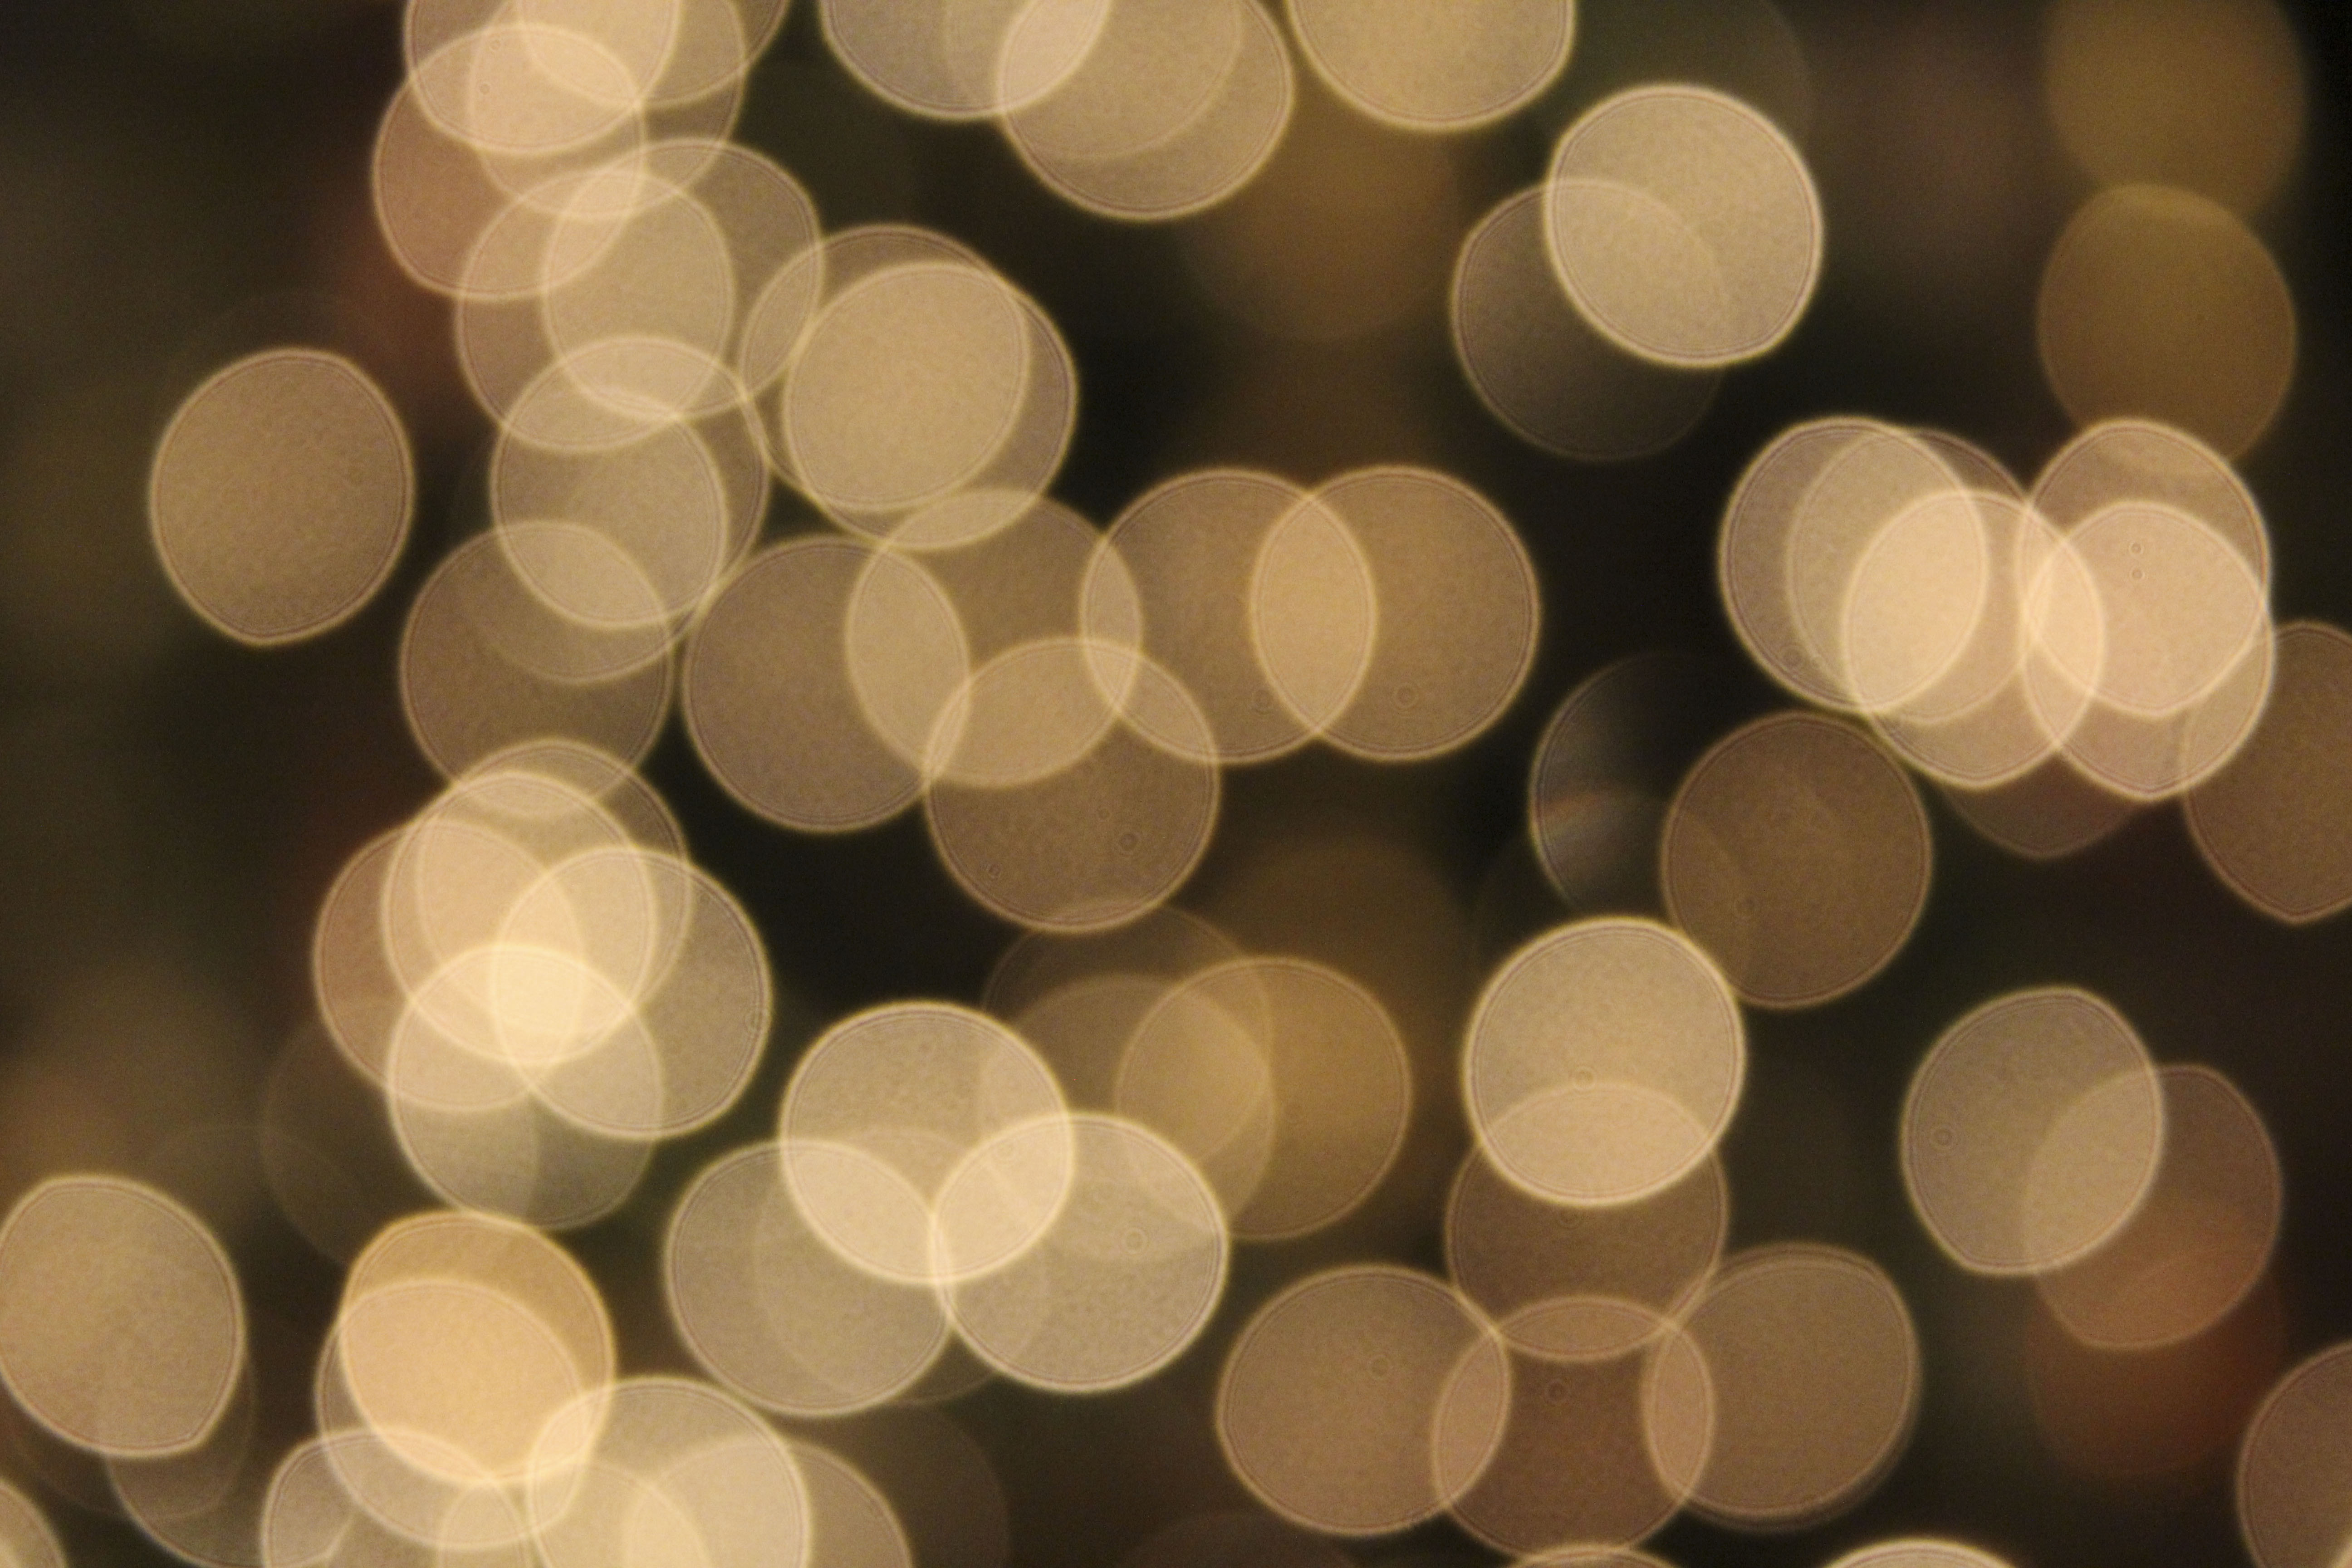 Bokeh/Blurred Christmas Lights (Hard) by pureoptic on DeviantArt